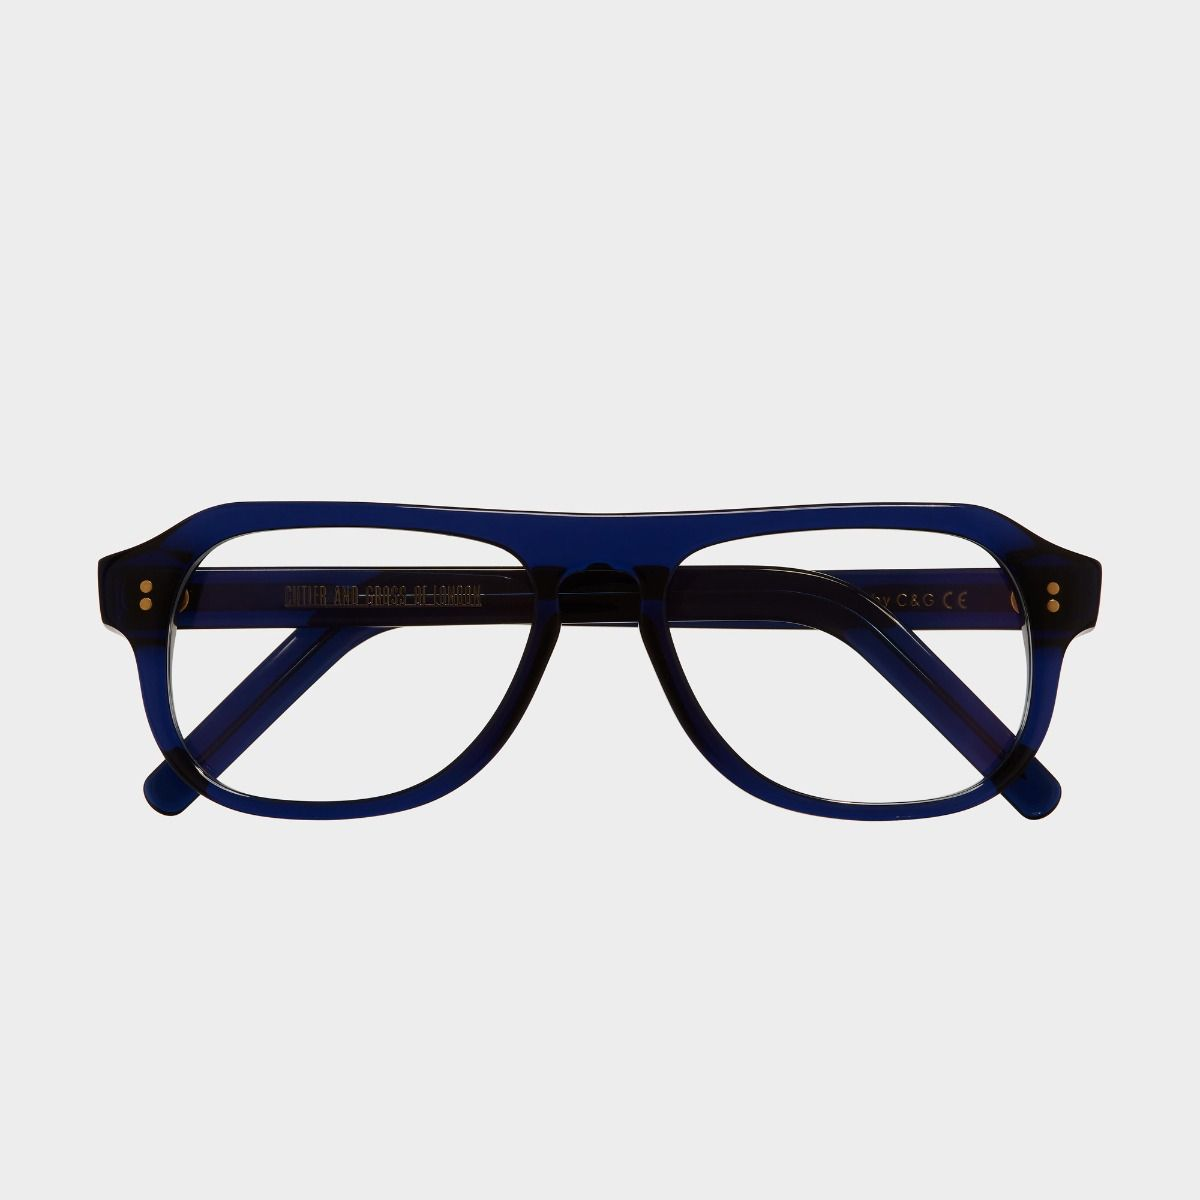 0822V2 Optical Aviator Glasses-Classic Navy Blue